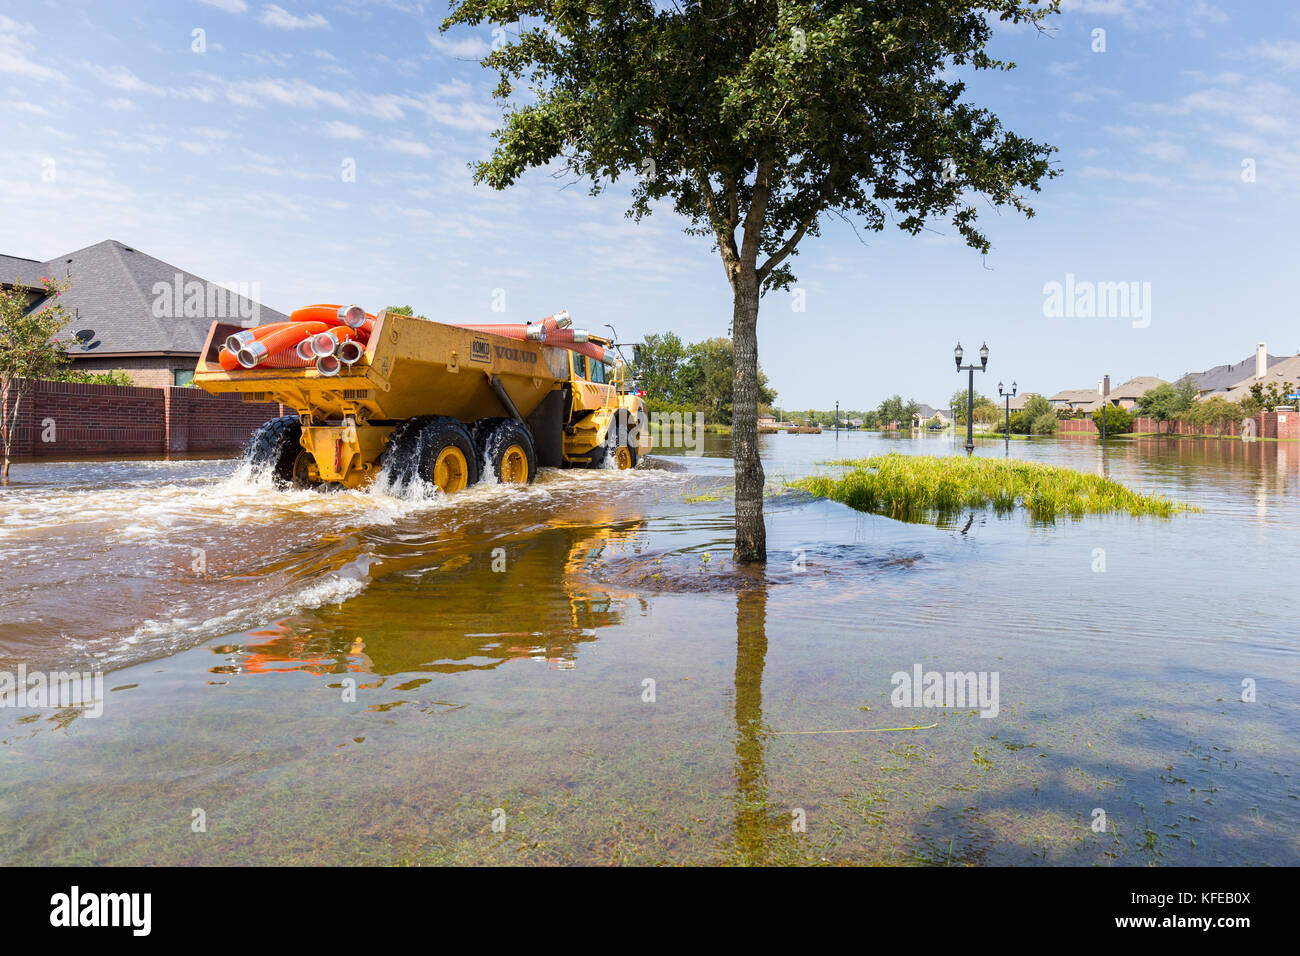 Mobile flood pumps are brought to the Riverstone neighborhood for disaster relief after hurricane Harvey - Stock Image